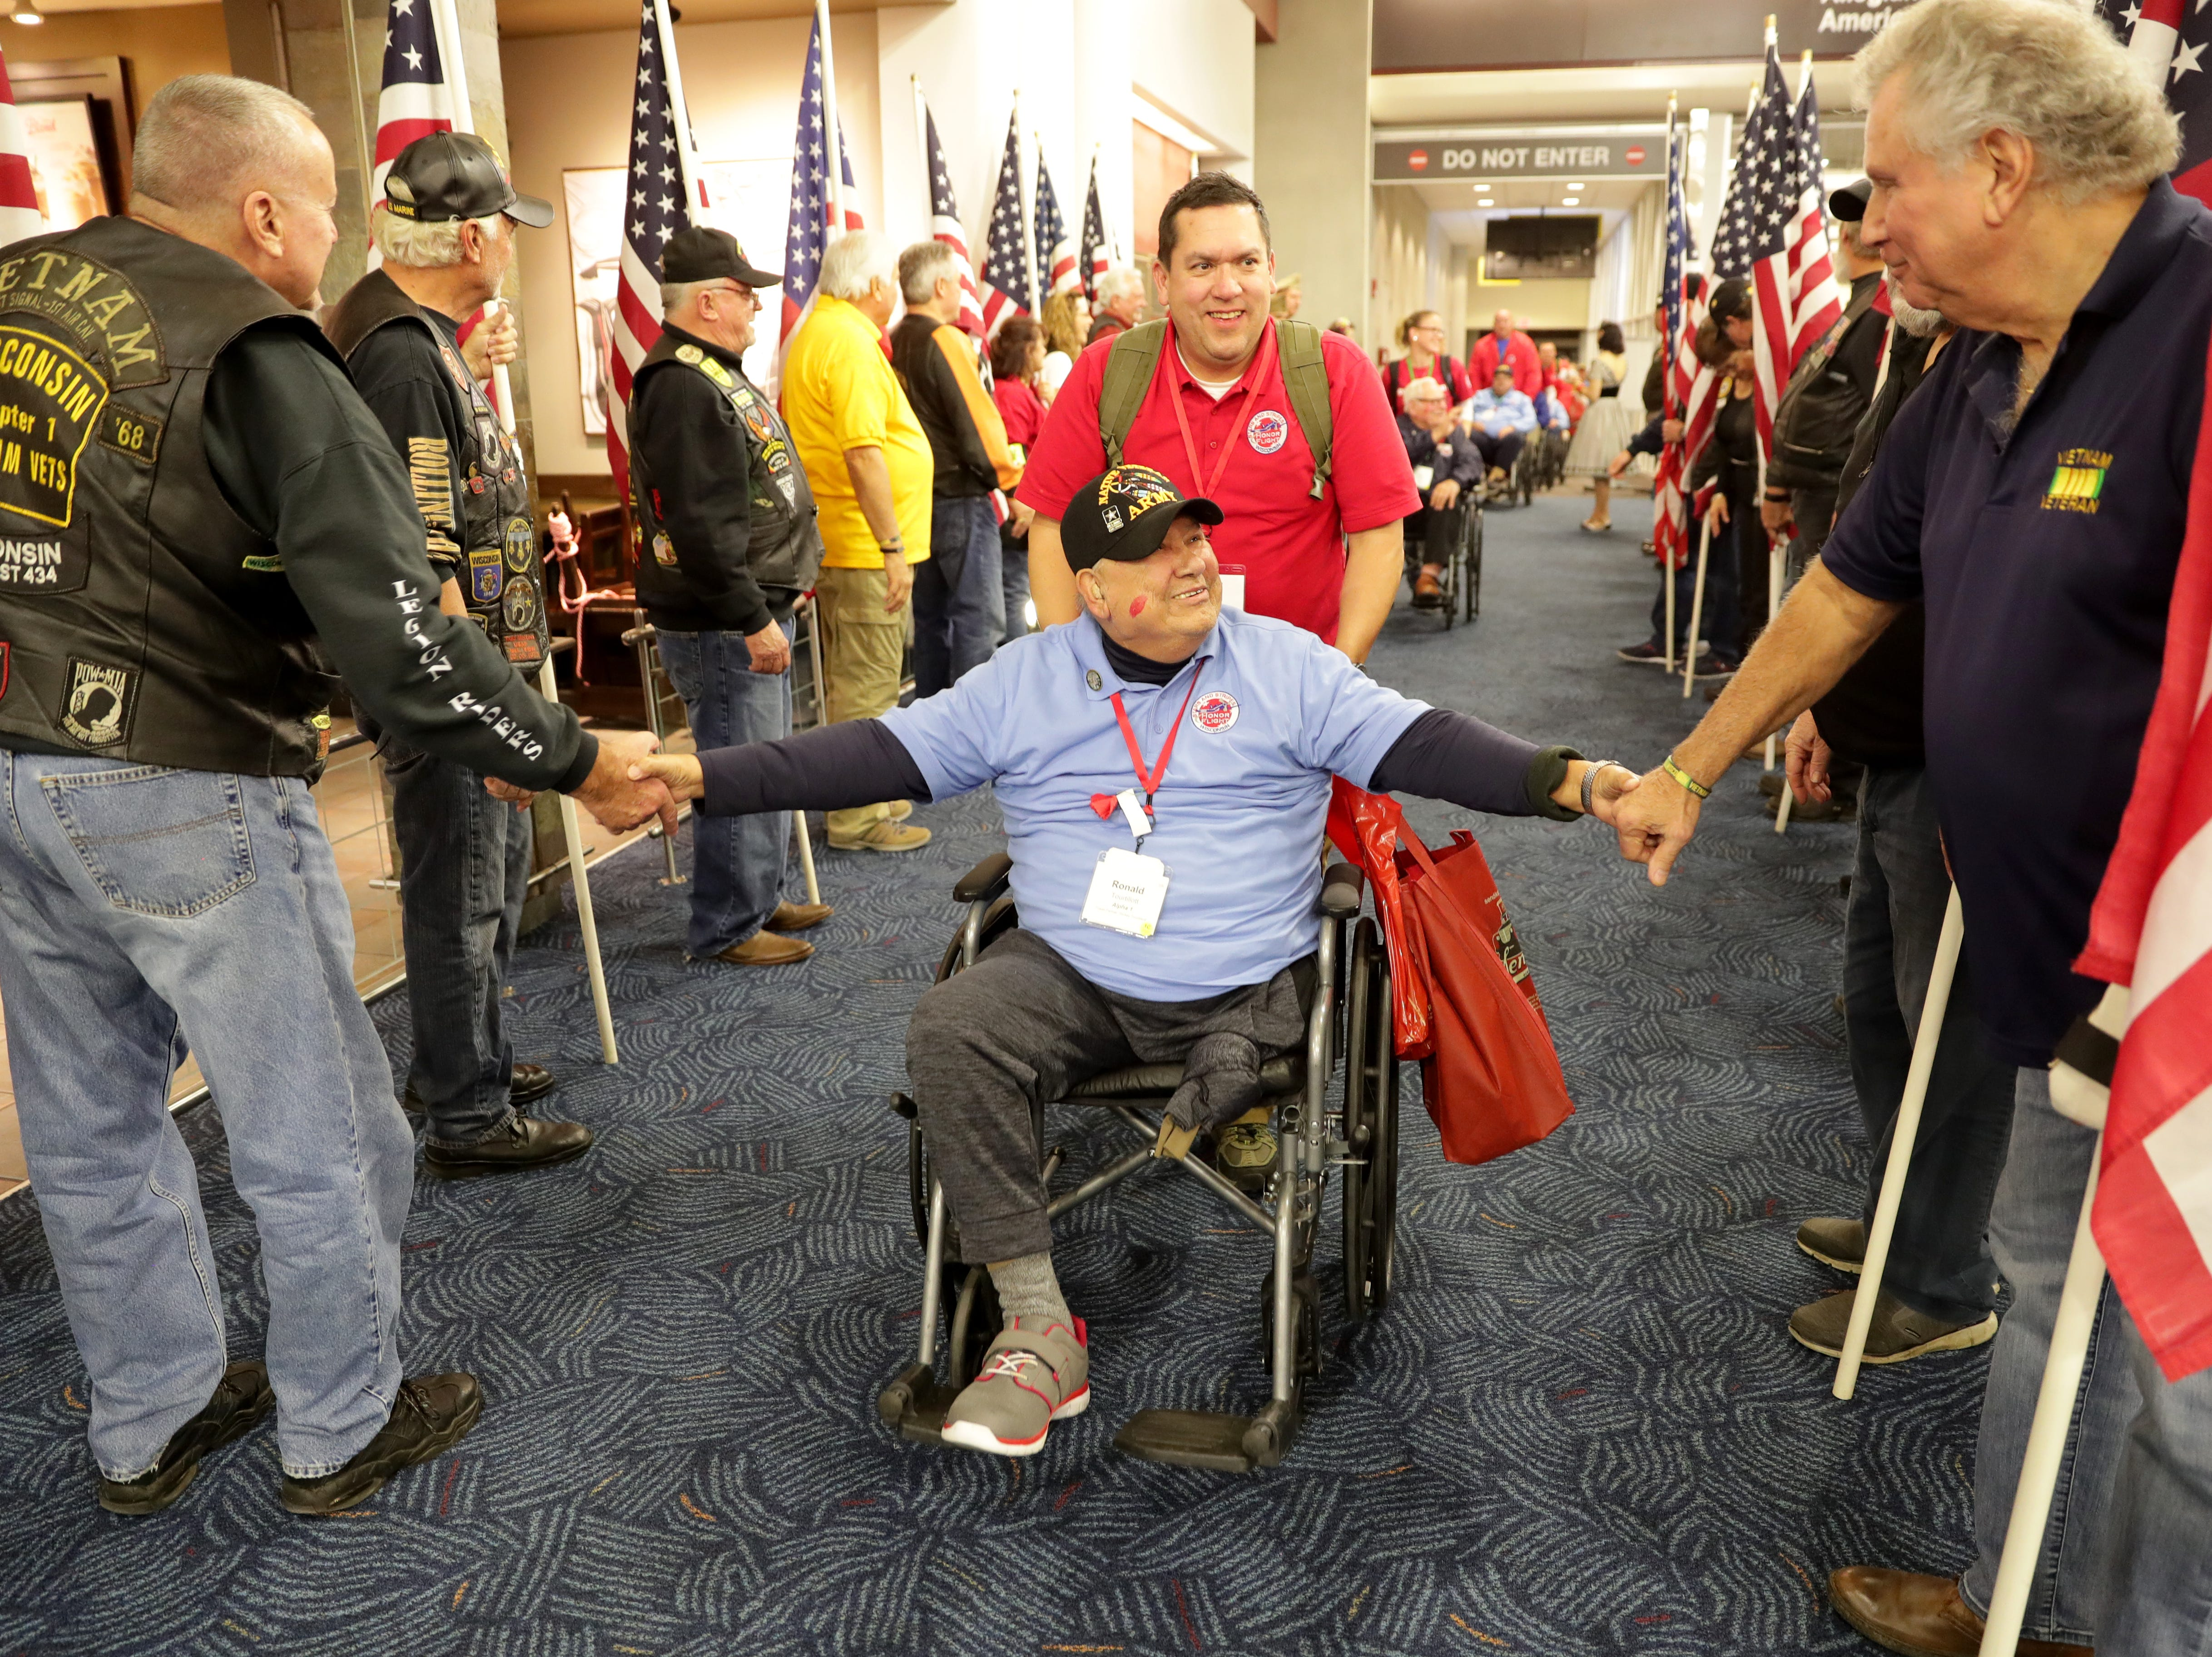 Vietnam veteran Ronald Tourtillott is greeted with his guardian, Ricky Tourtillott, during the welcome home ceremony.